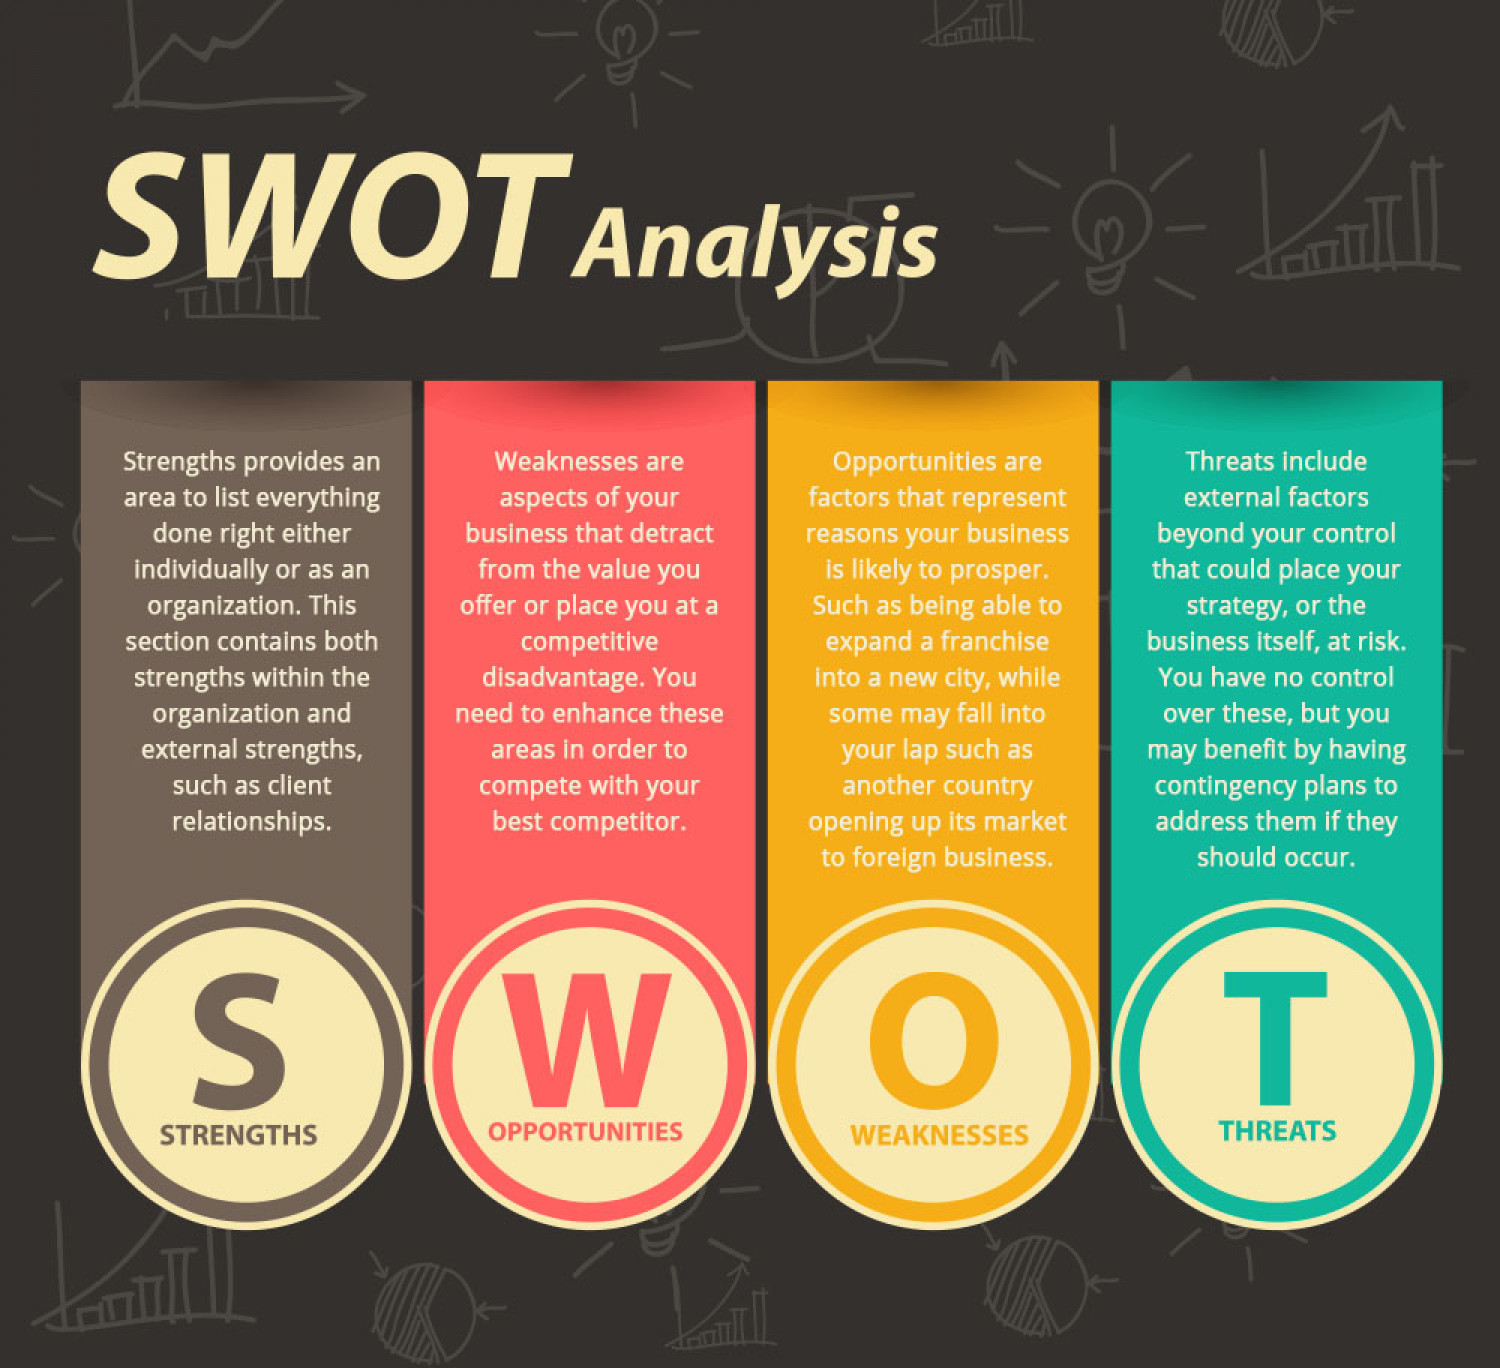 explain the role of others in the development of a personal development plan in strengths Conducting swot analysis for personal development sounds like a great idea  it plays a very significant role in personal progress  what do other people see as.